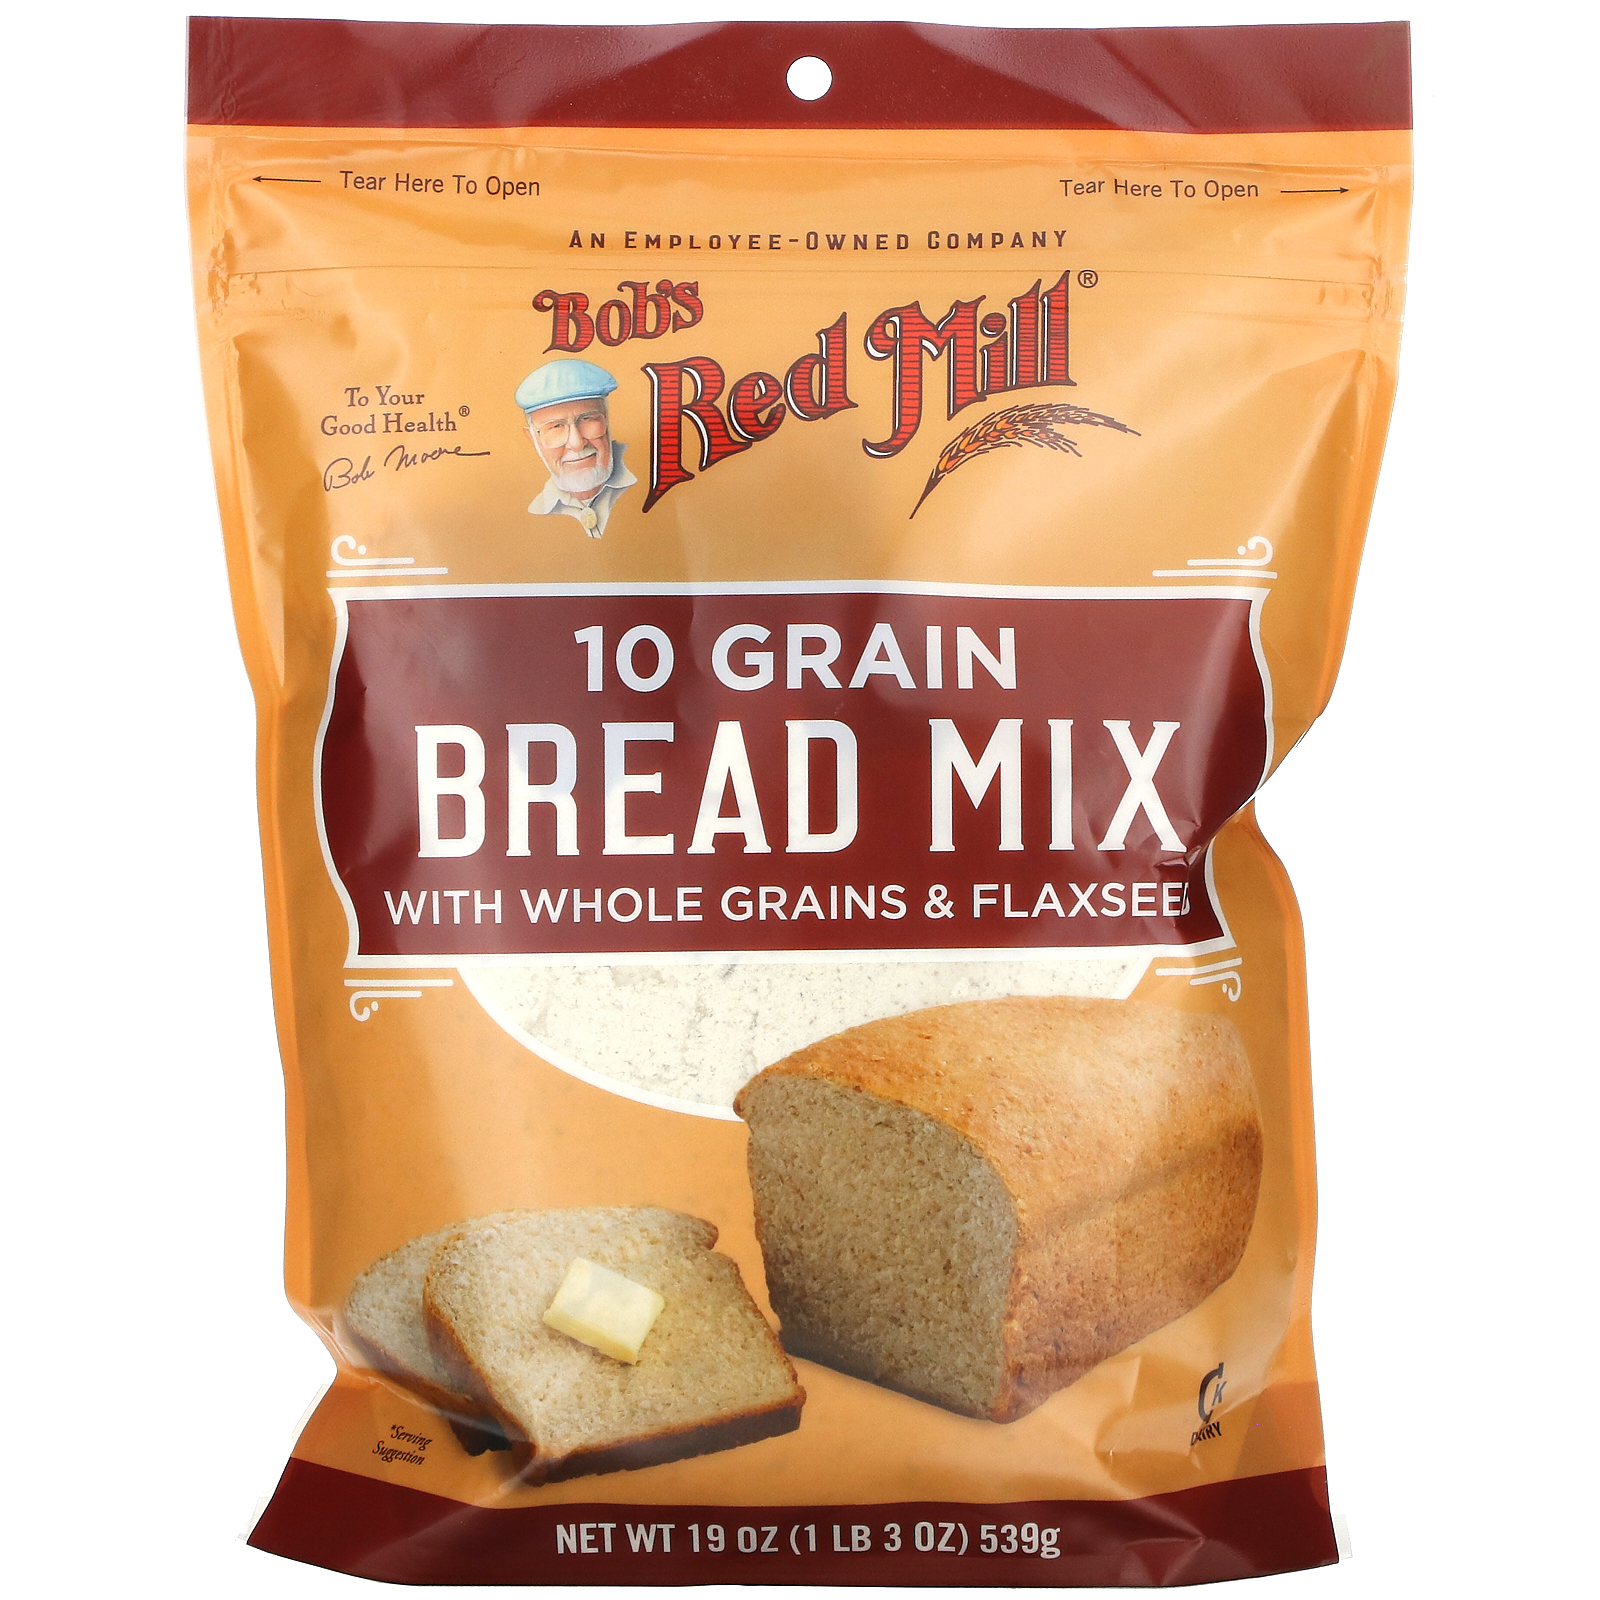 Bob's Red Mill, 10 Grain, Bread Mix, 19 oz (539 g)